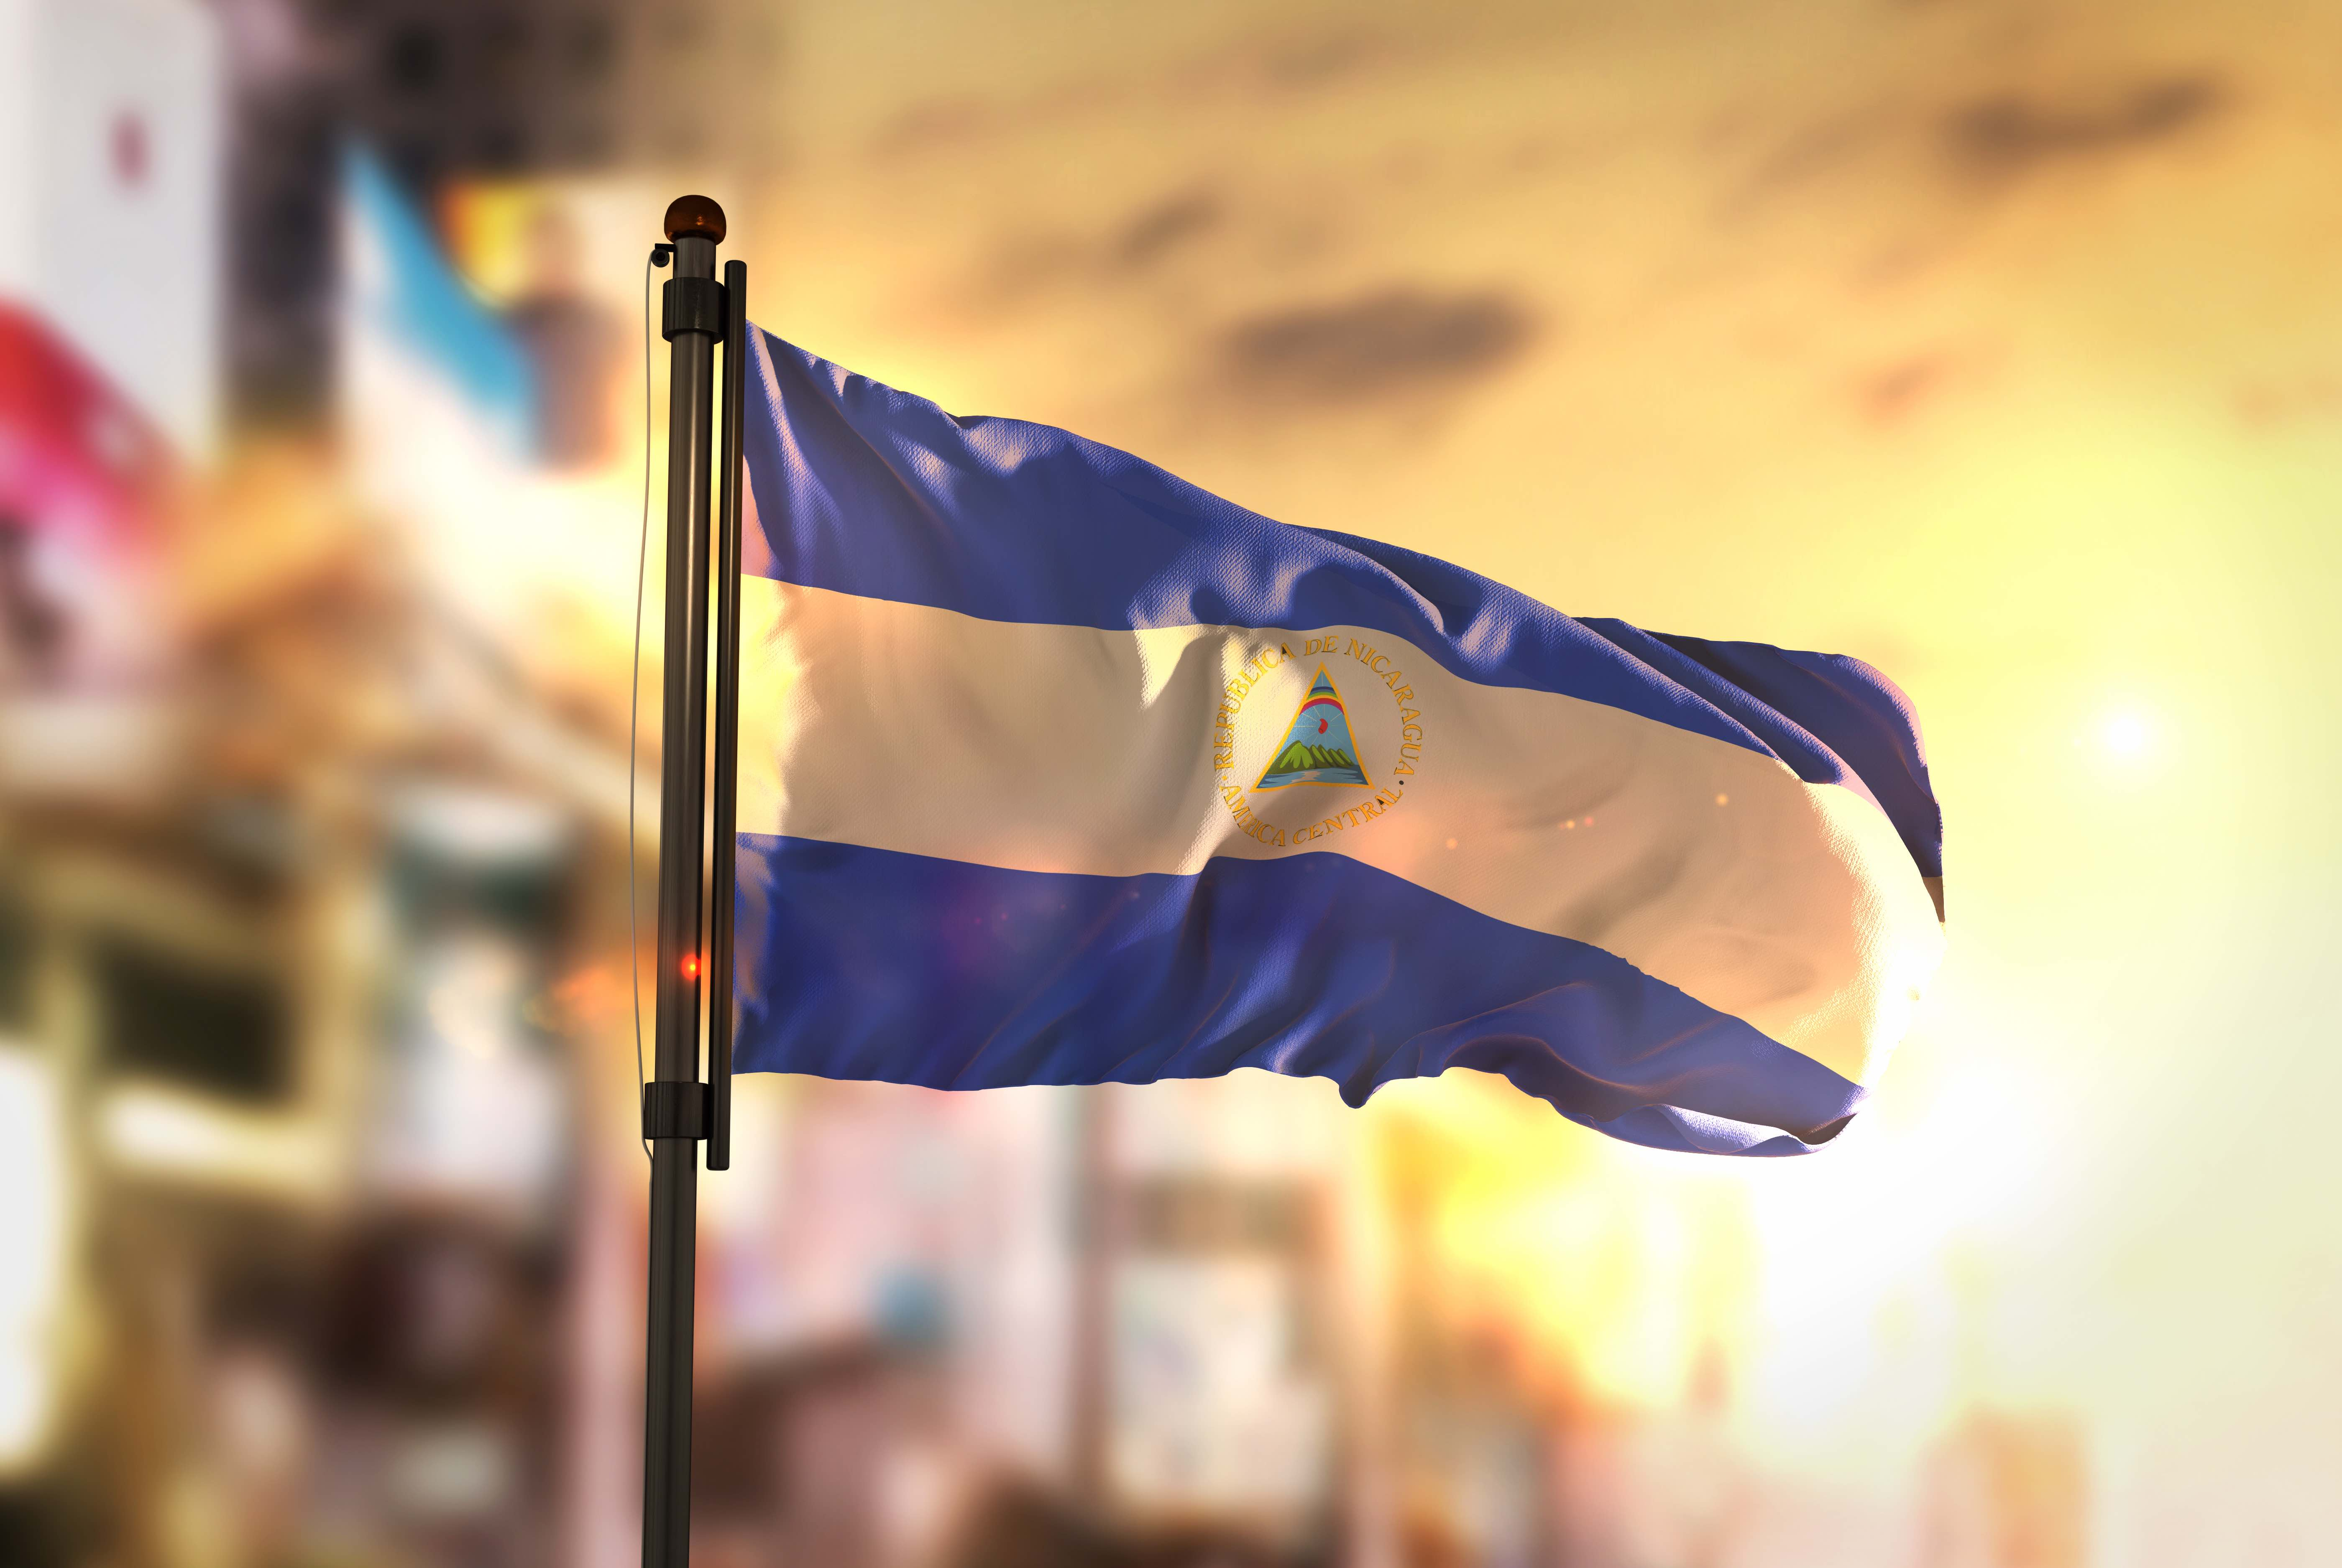 What It's Like to Be a Young Person Fighting for Change in Nicaragua